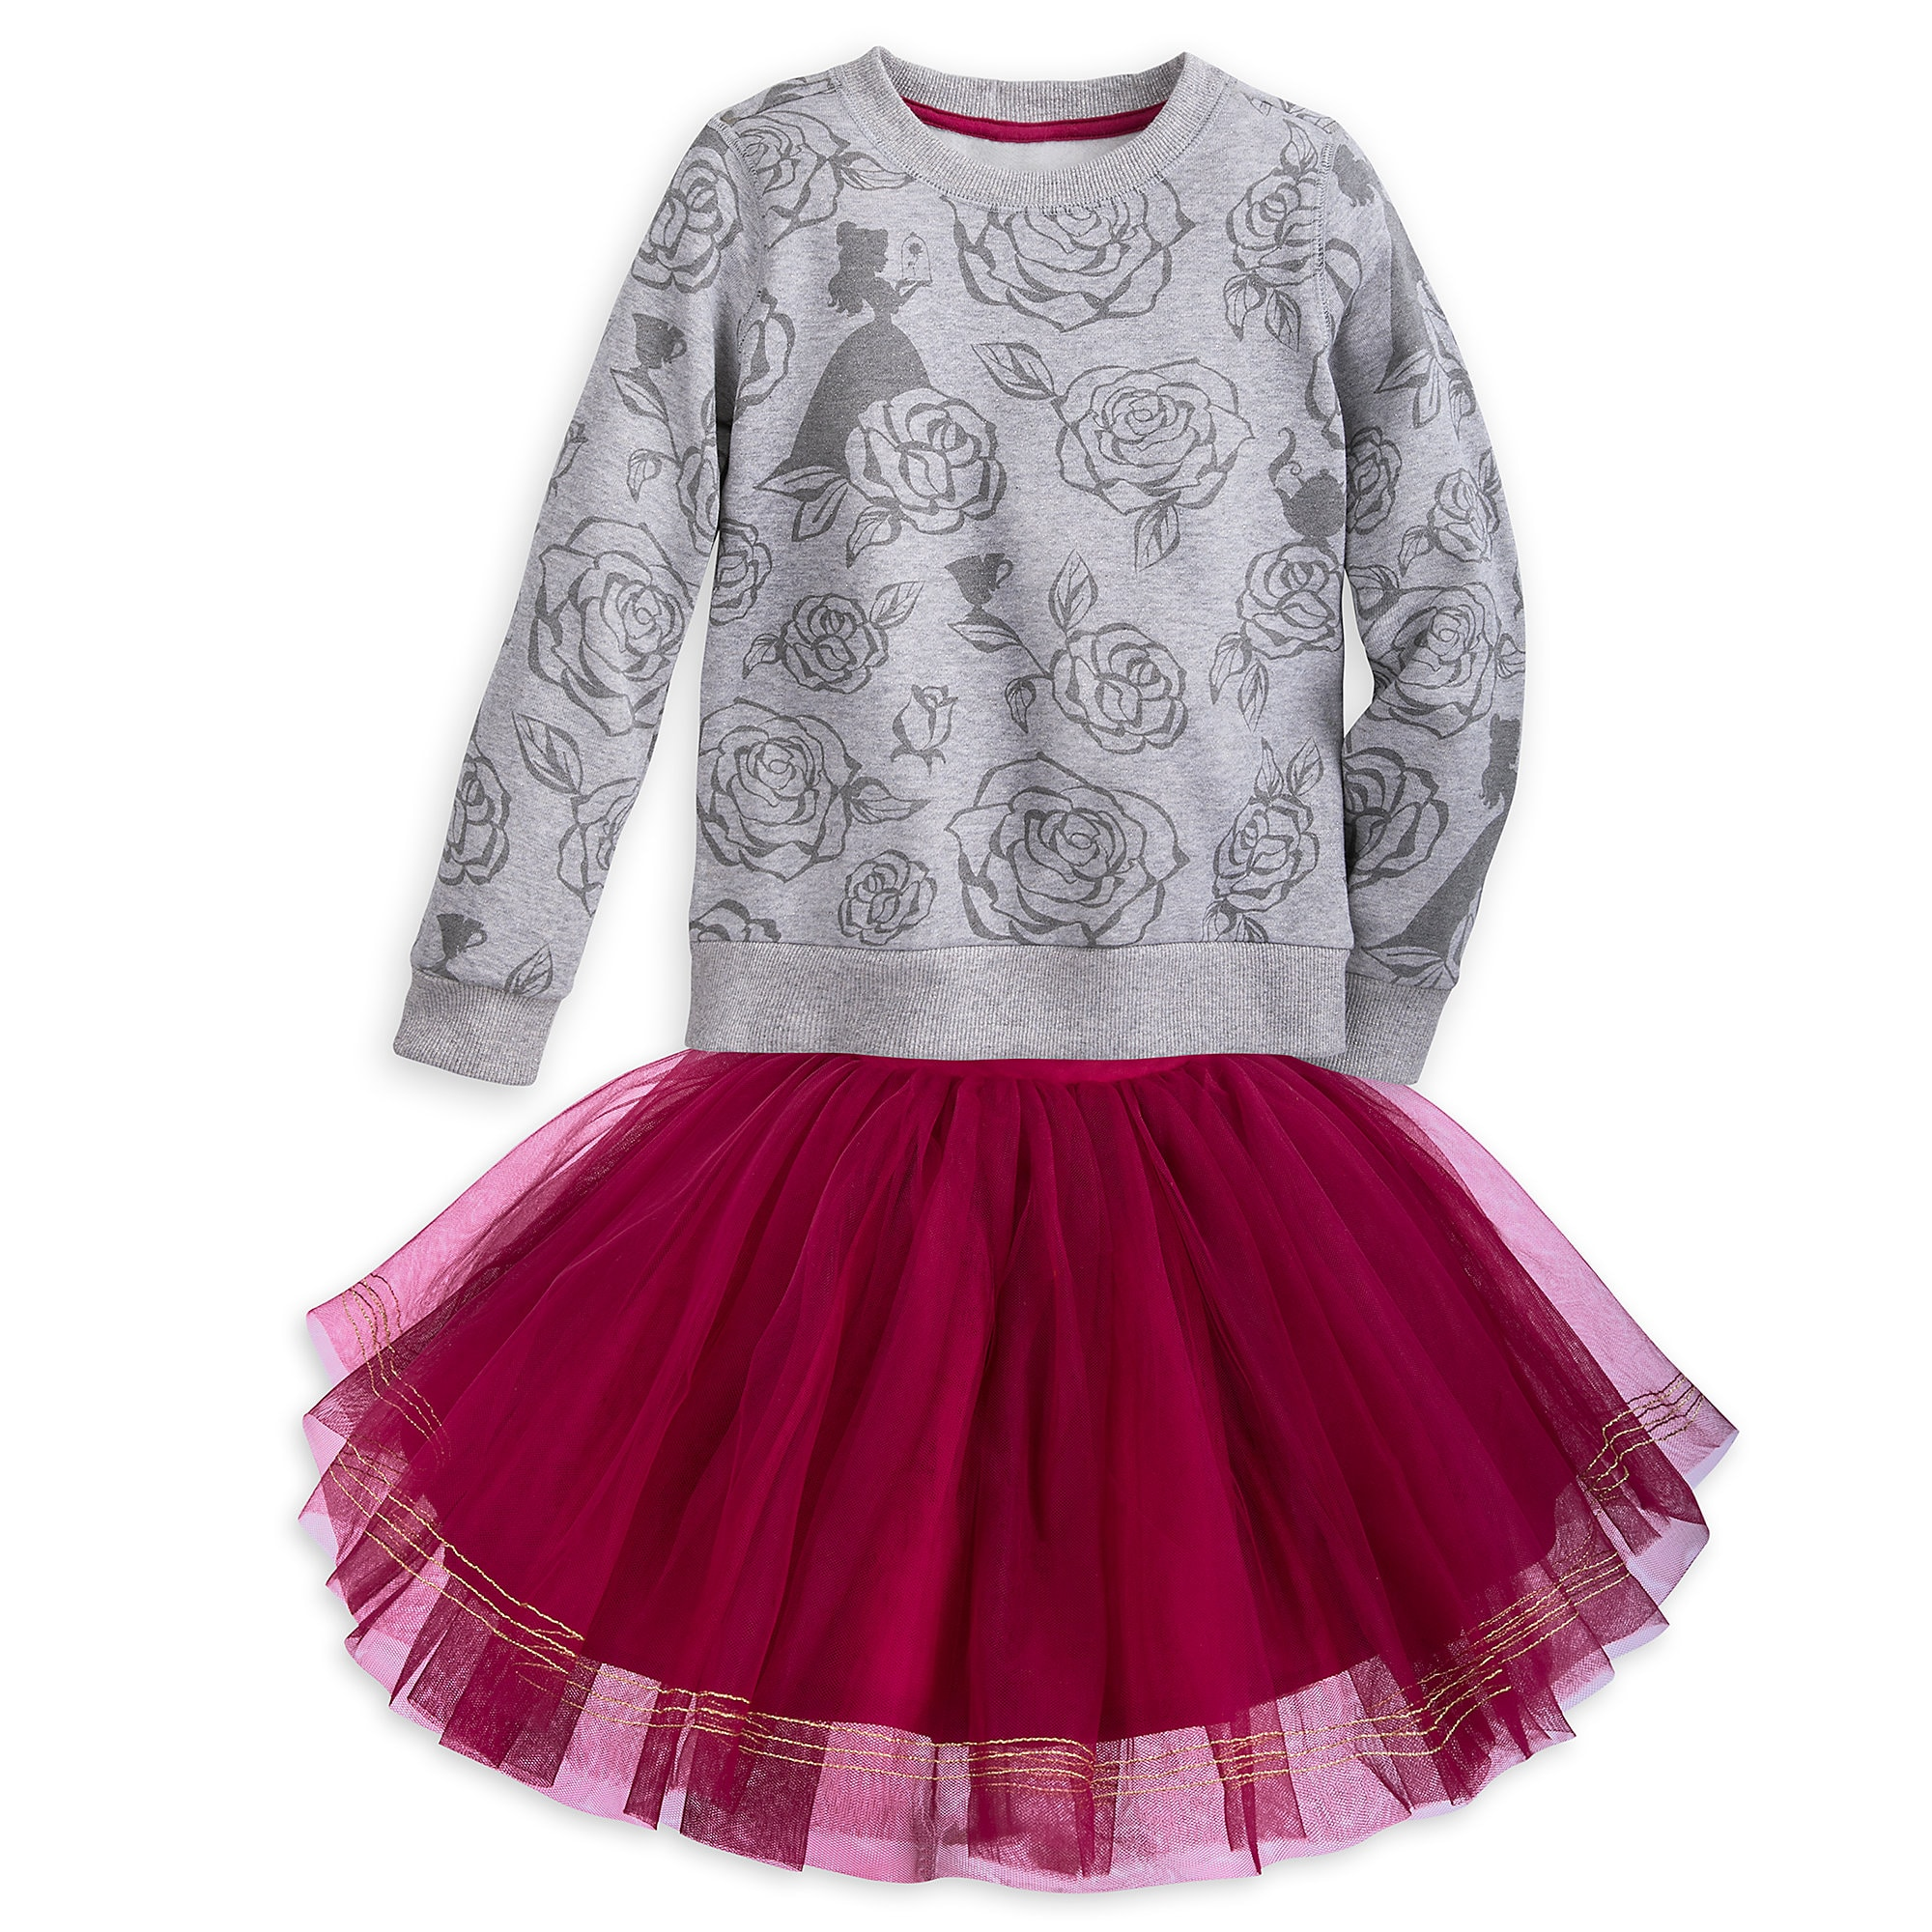 Belle Skirt Set for Girls